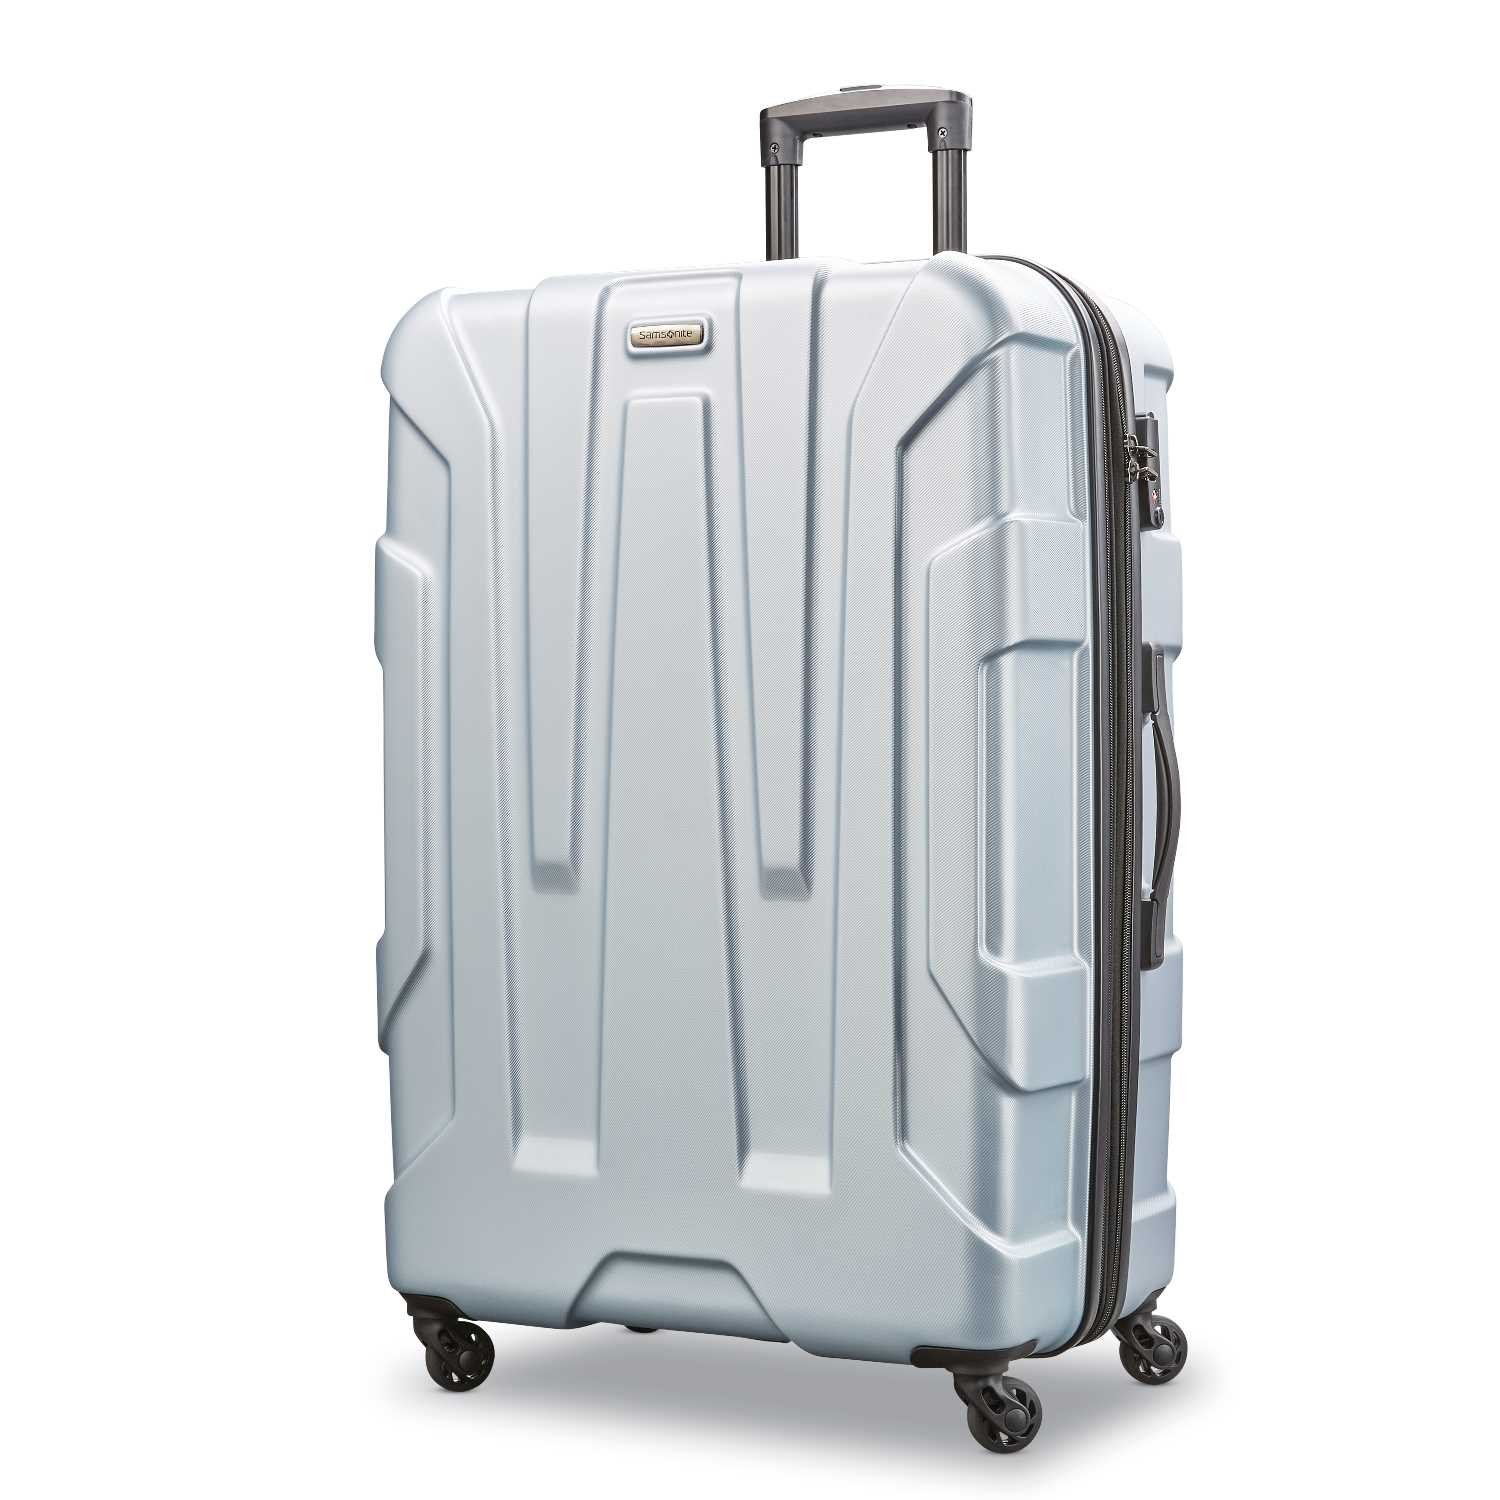 Samsonite Centric Expandable Hardside Checked Luggage with Spinner Wheels, 28 Inch, Caribbean Blue Samsonite Drop Ship Code 102690-2479